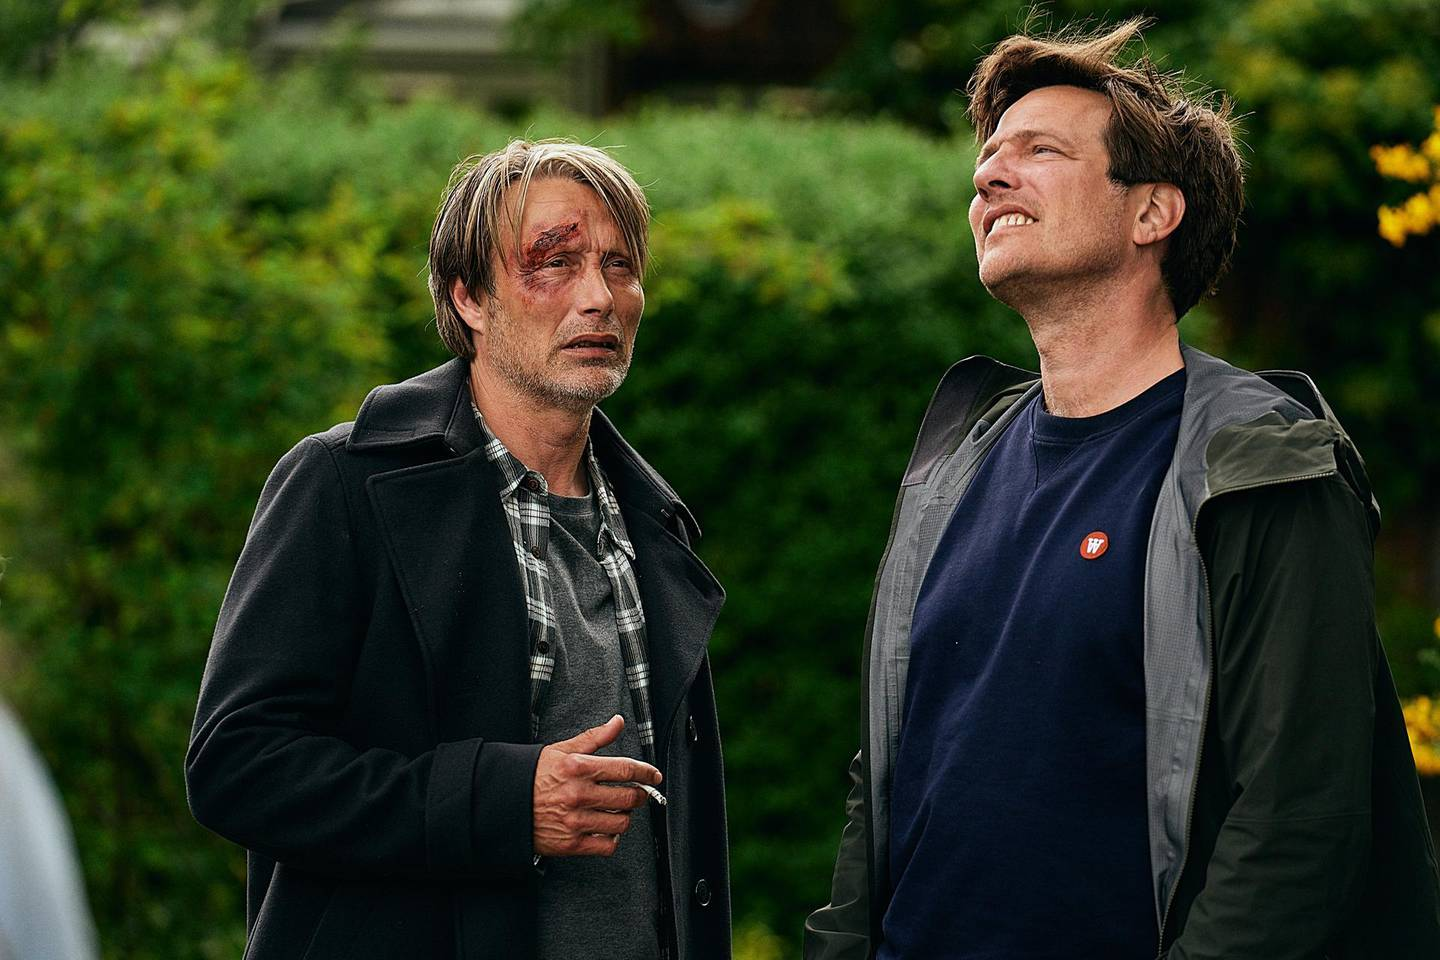 """This image released by Samuel Goldwyn Films shows Mads Mikkelsen, left, with director Thomas Vinterberg on the set of """"Another Round.""""  (Samuel Goldwyn Films via AP)"""